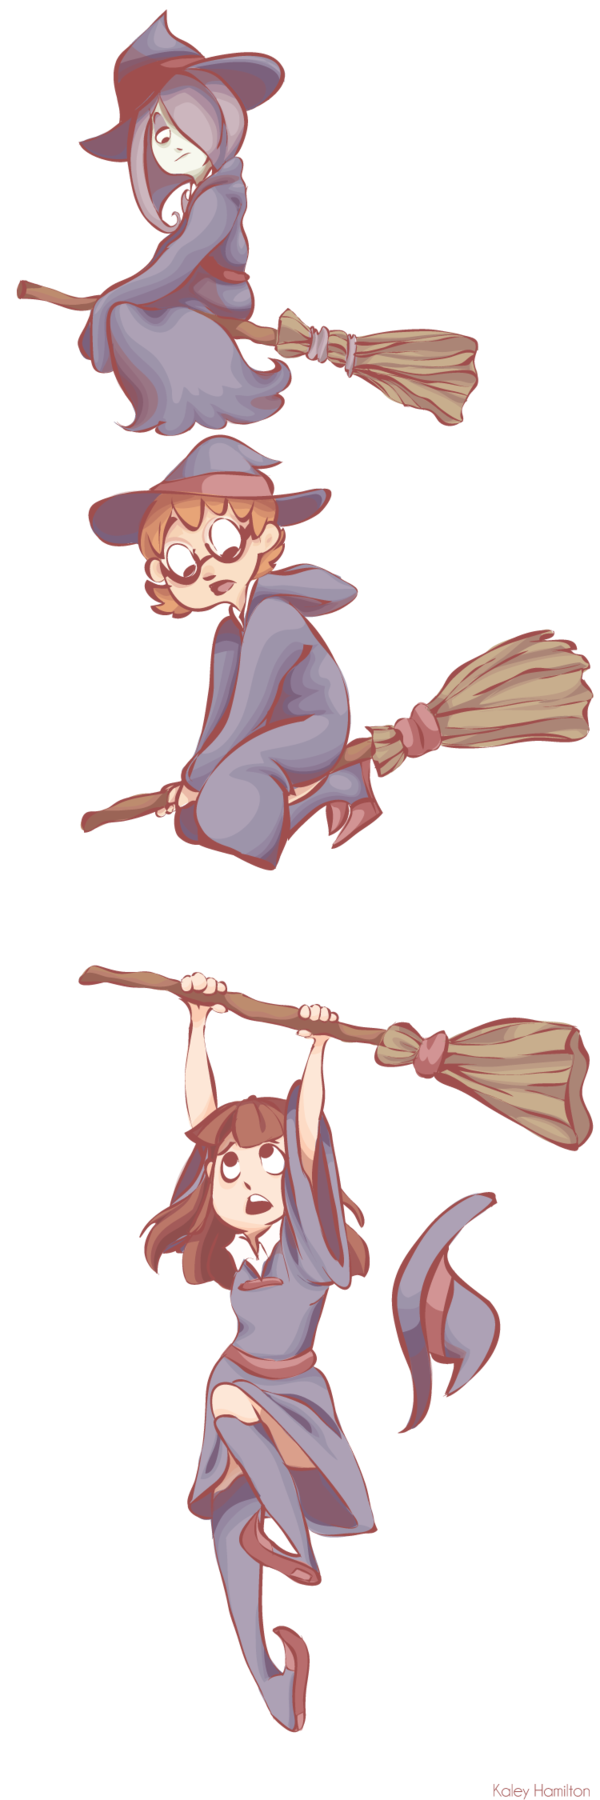 Drawn witchcraft animated Pinterest ● witch little little